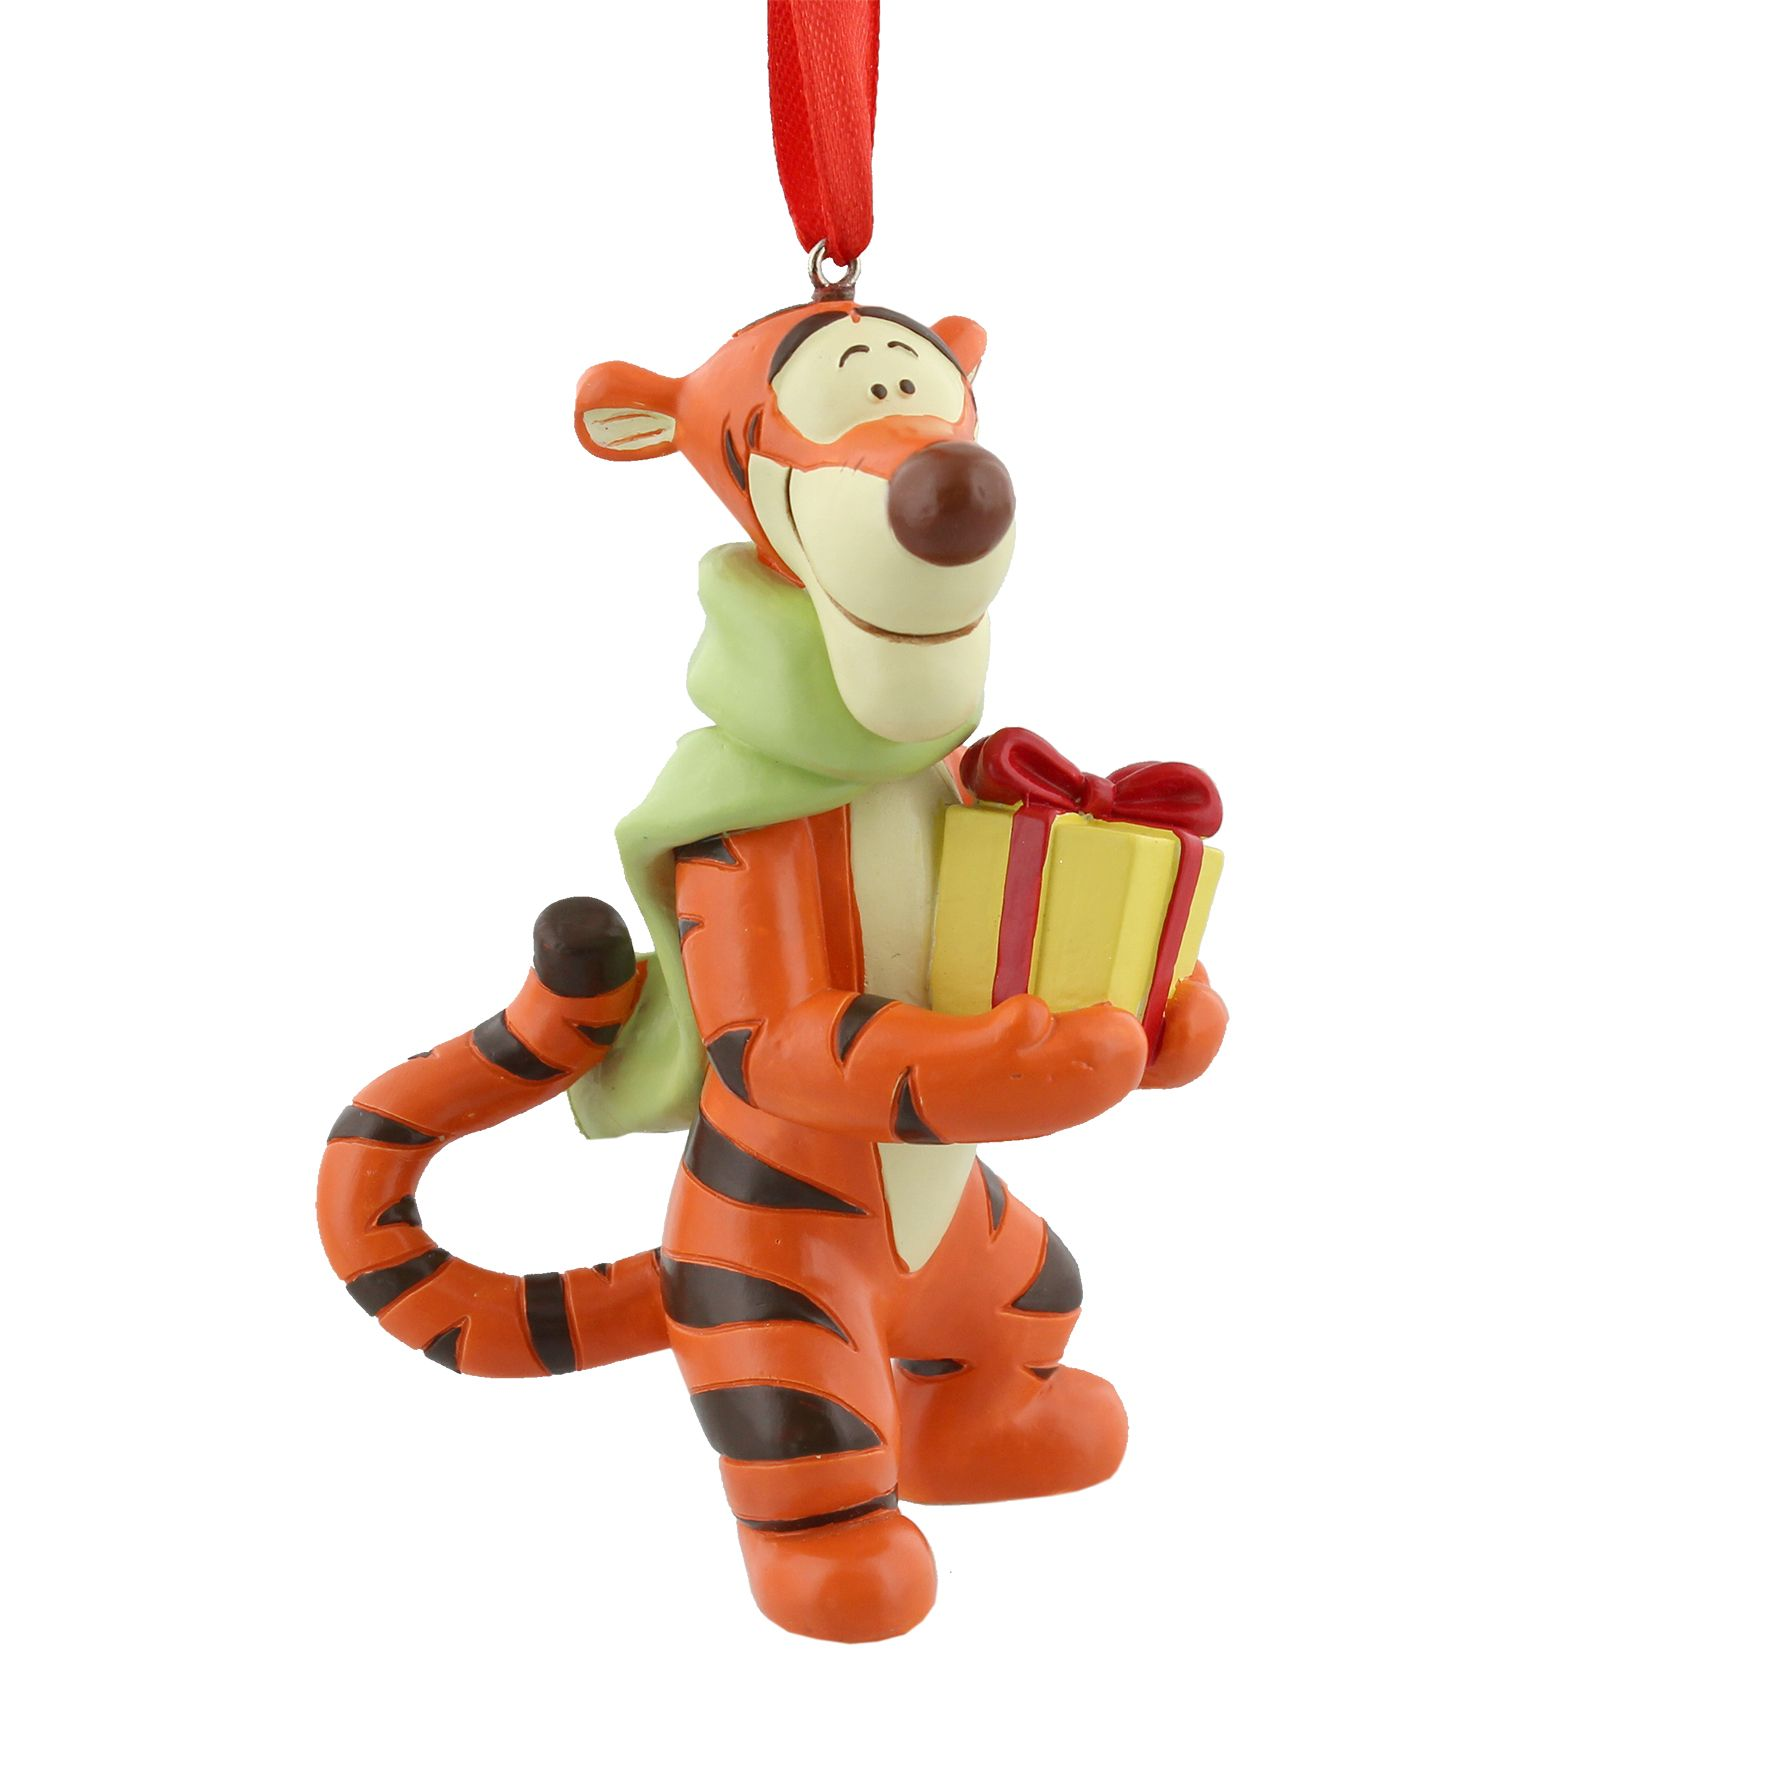 Tigger Christmas Ornaments.Disney Christmas Tree Decoration Tigger From Winnie The Pooh Hanging Ornament